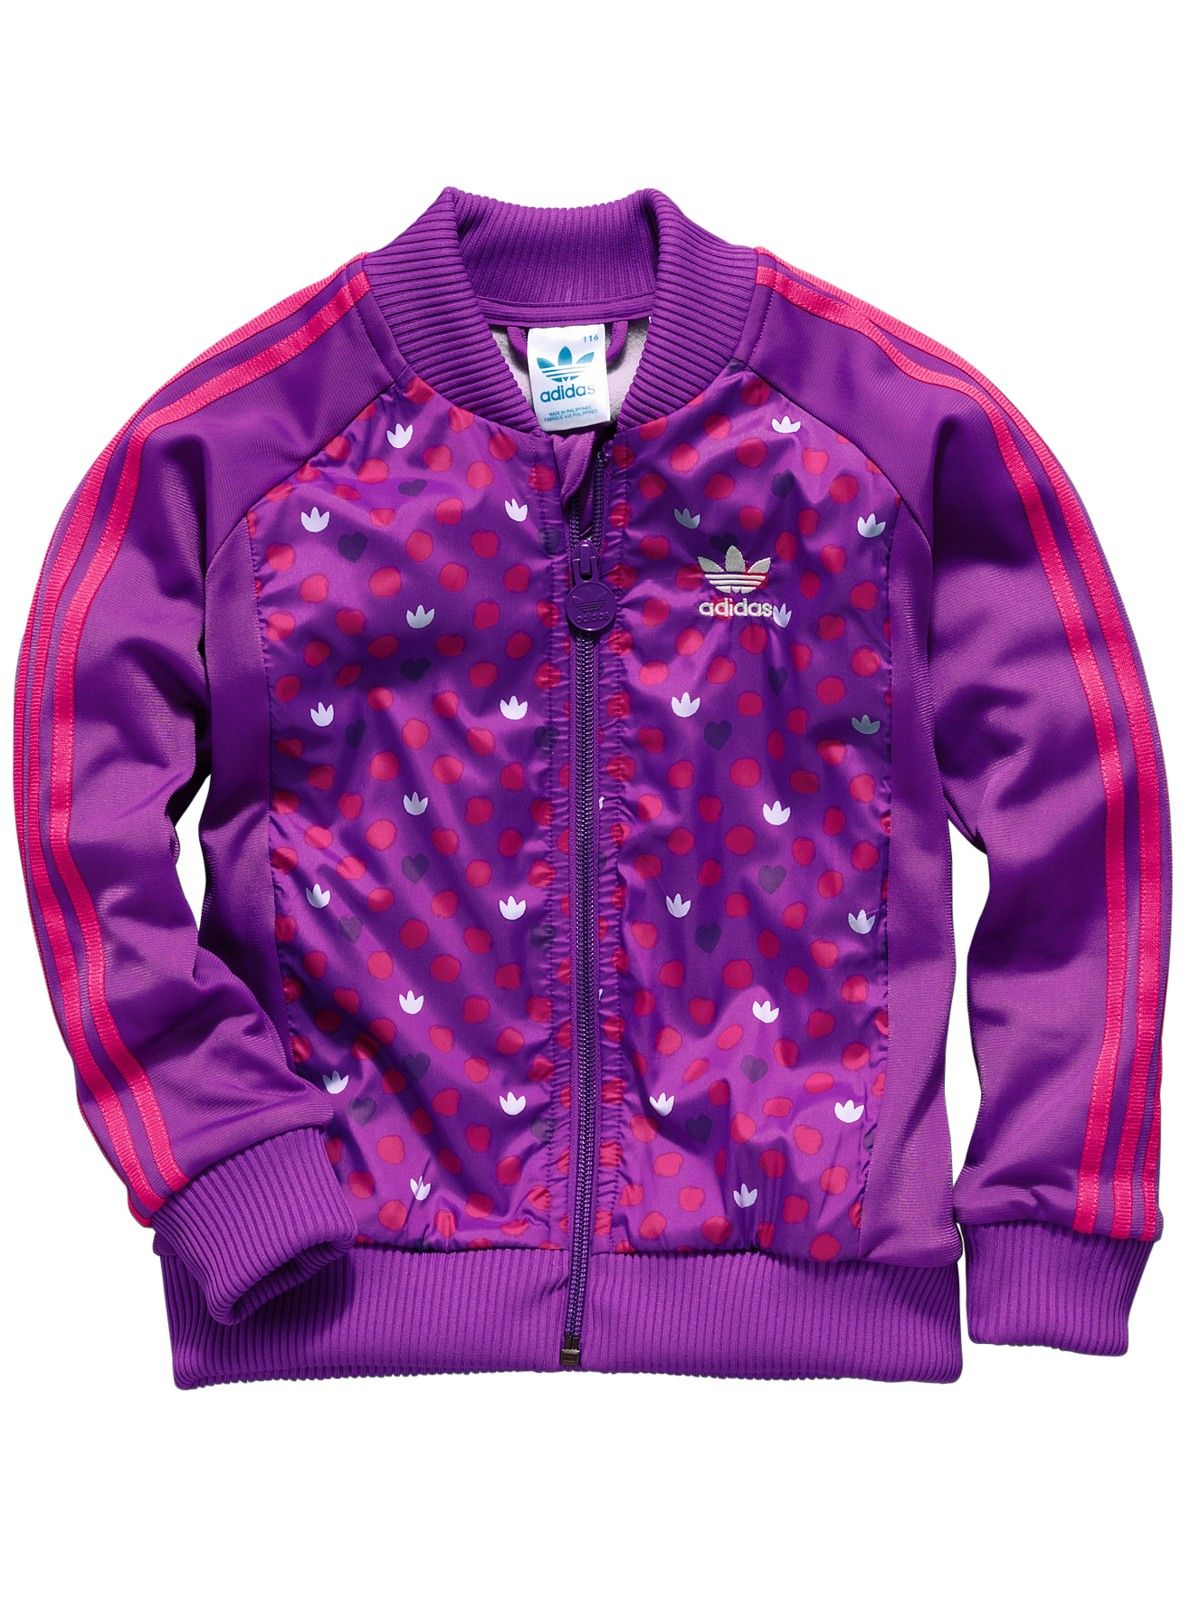 44e9c5f6ba7a adidas Originals Superstar Girls Tracksuit £50.00